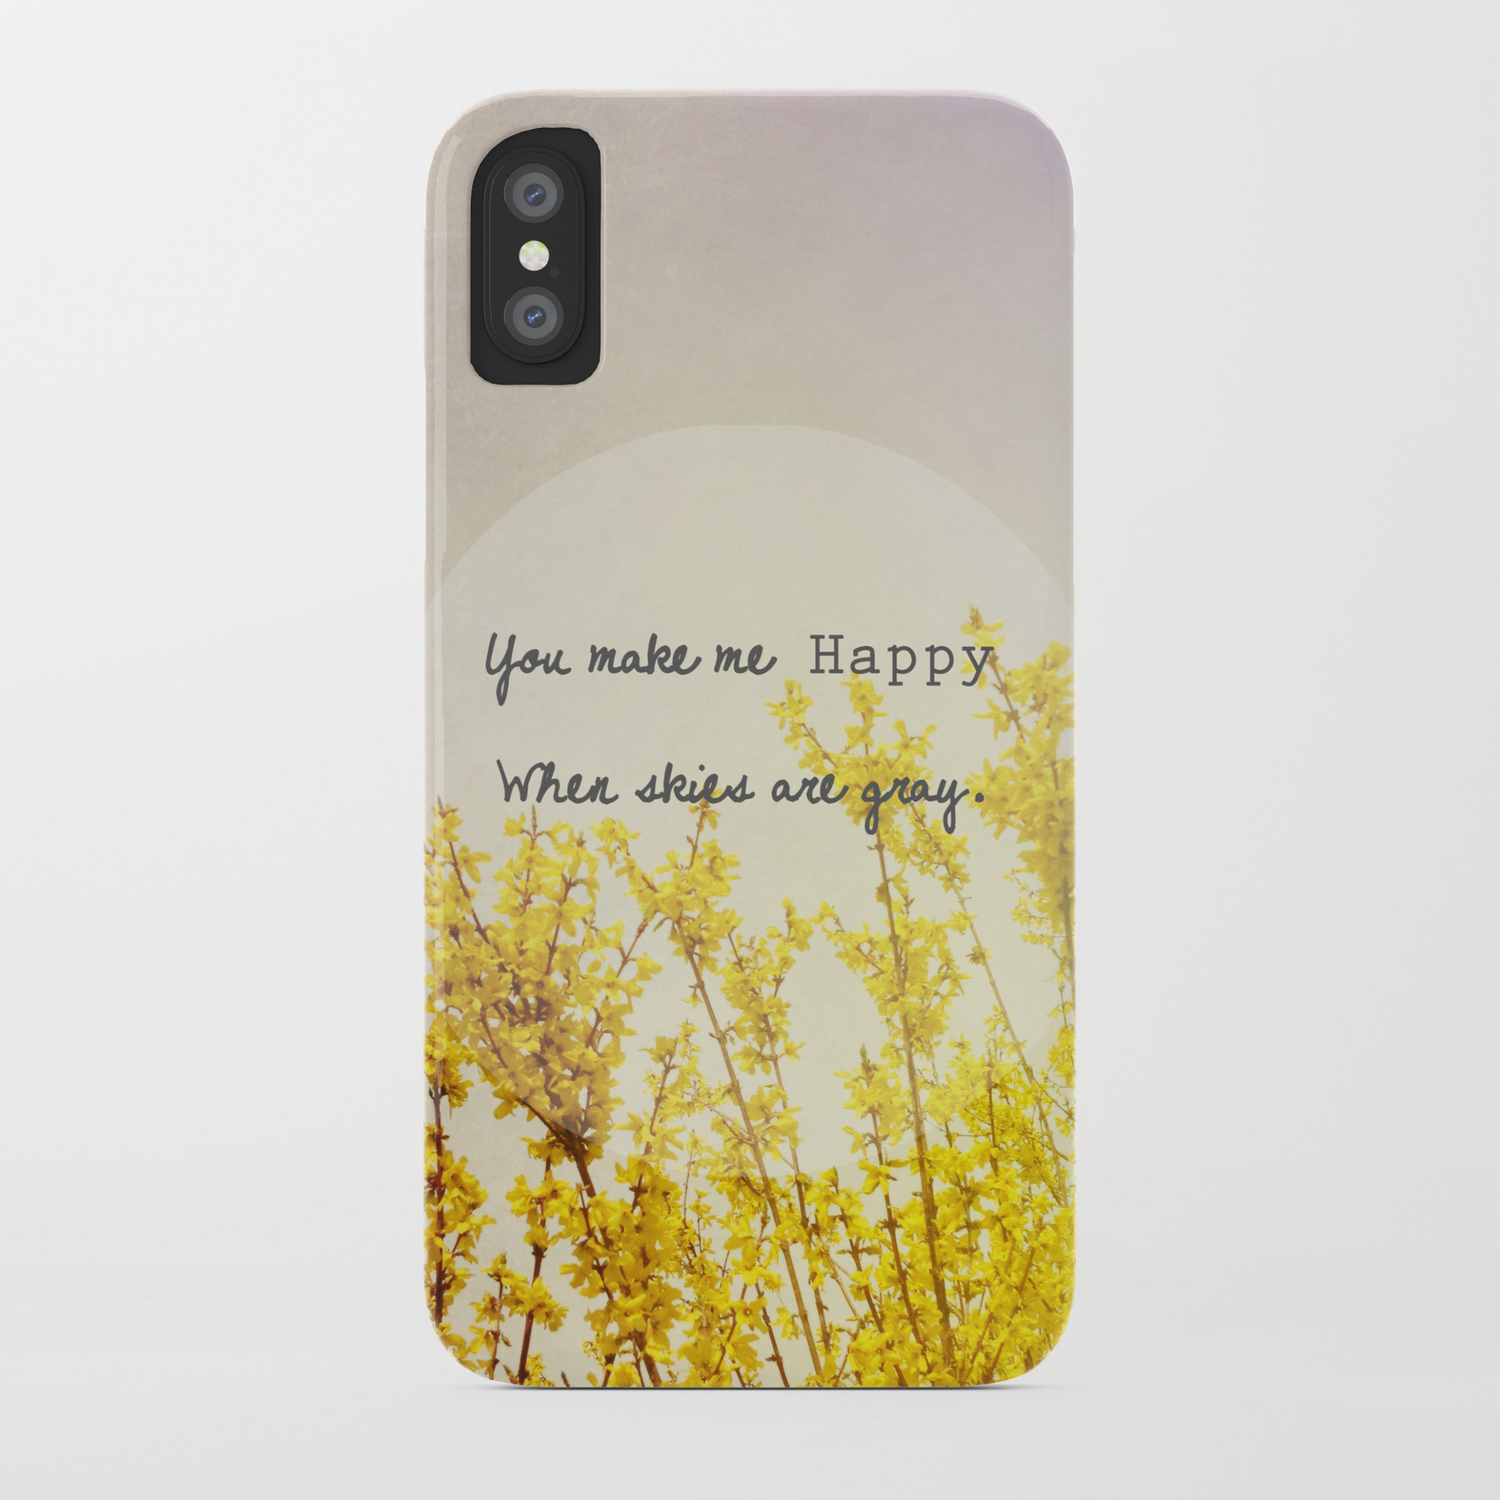 You Make Me Happy When Skies Are Gray iphone case